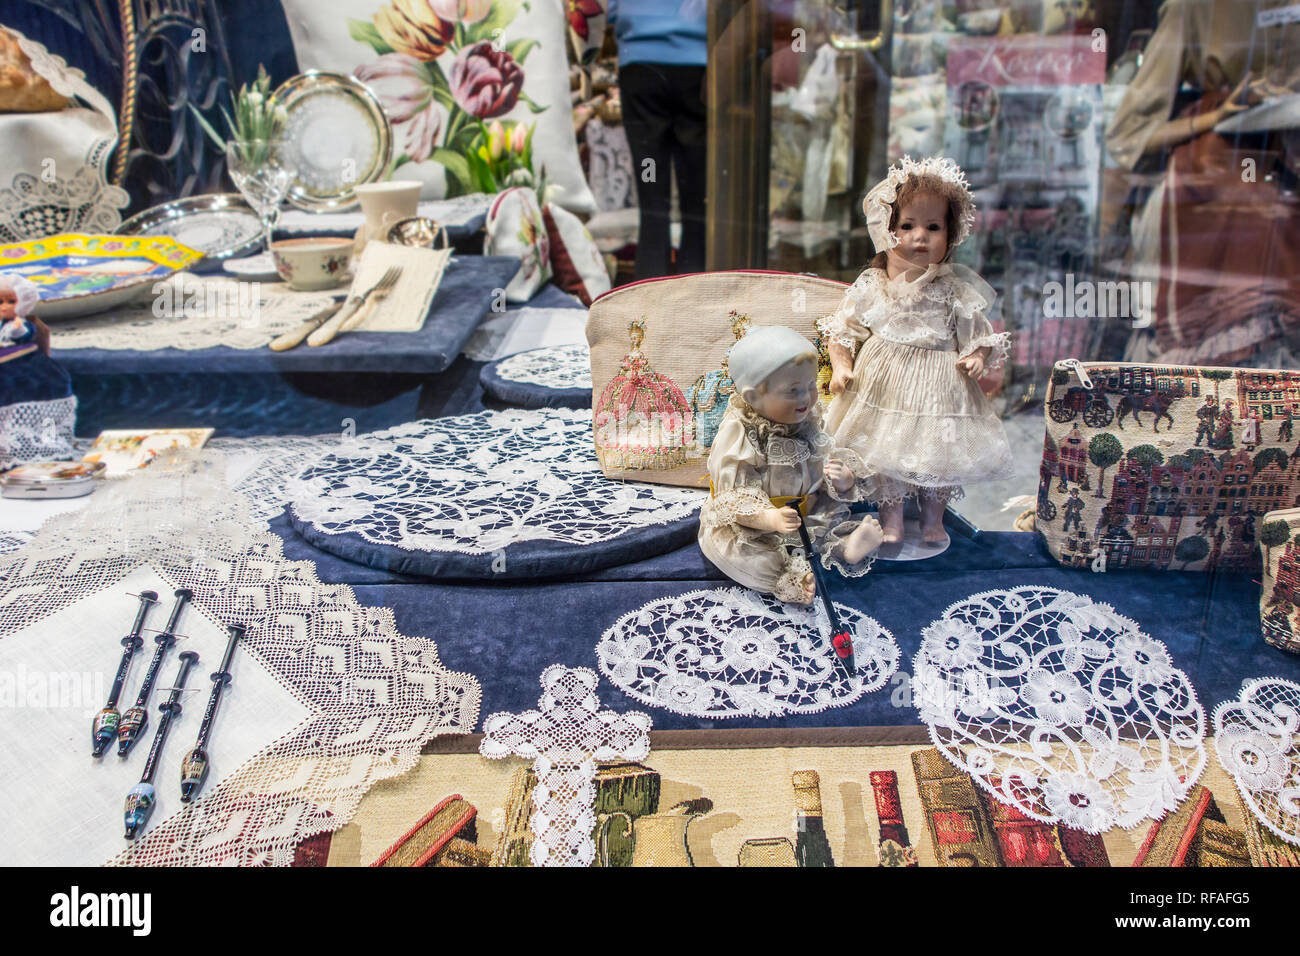 White Belgian bobbin lace for sale as tourist souvenirs in shop window of gift shop / tourist store in the city Bruges, West Flanders, Belgium - Stock Image